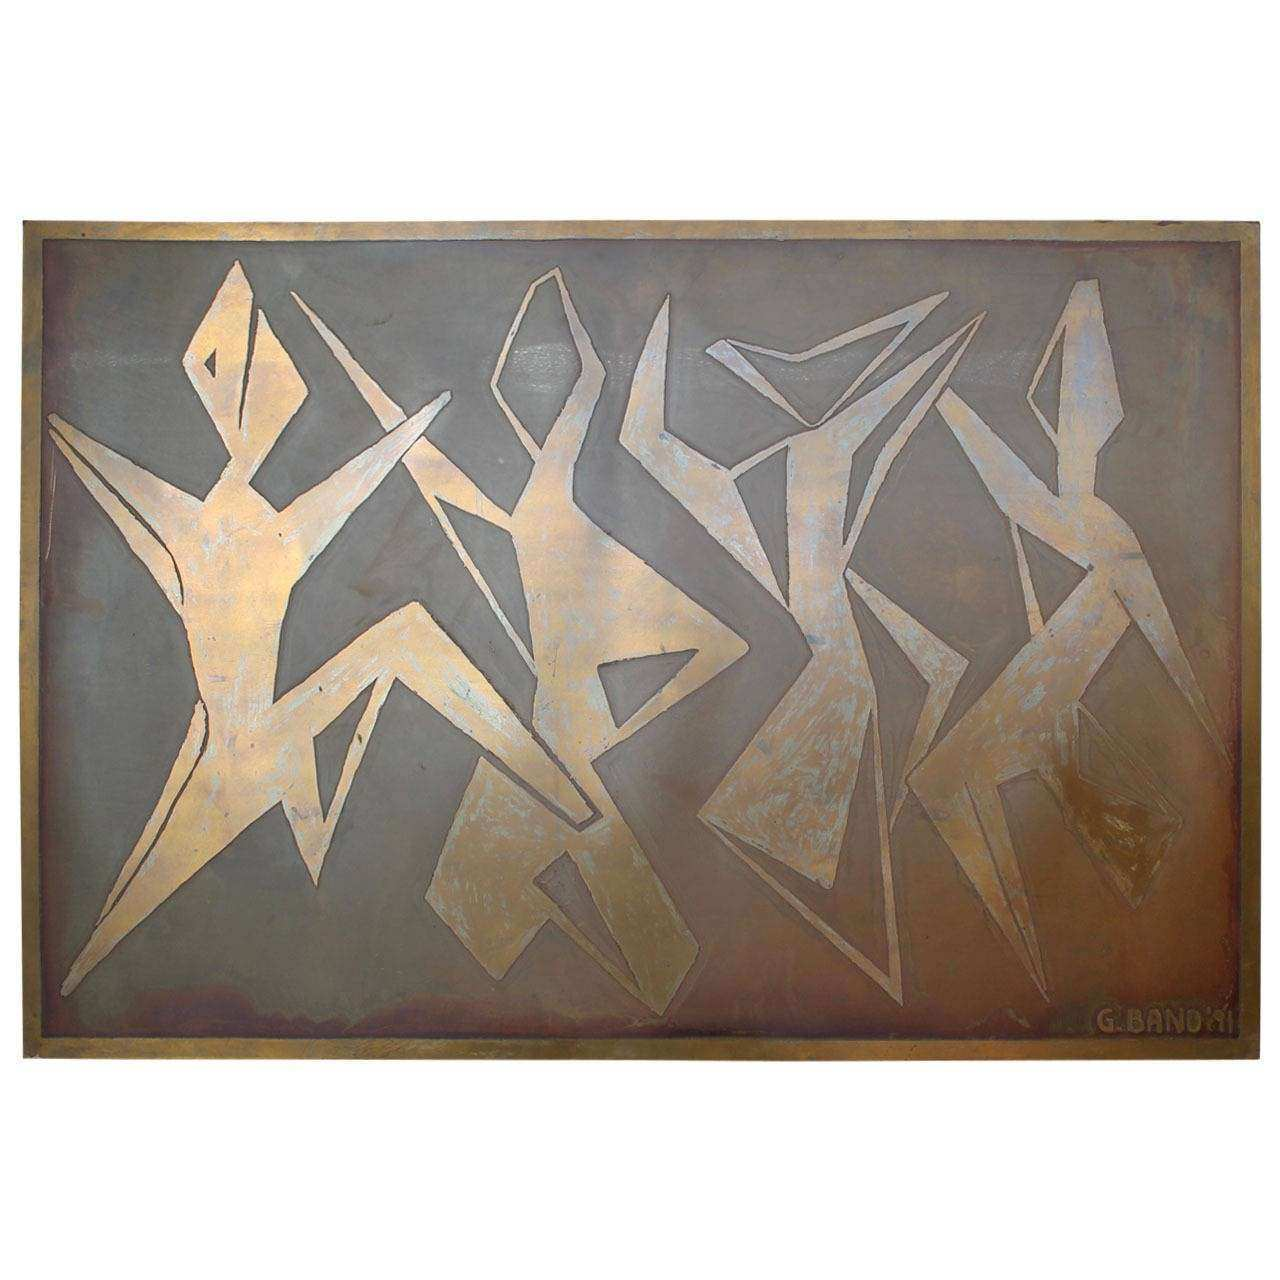 Beautiful Mexican Brass Carved Wall Art Piece by G Bano